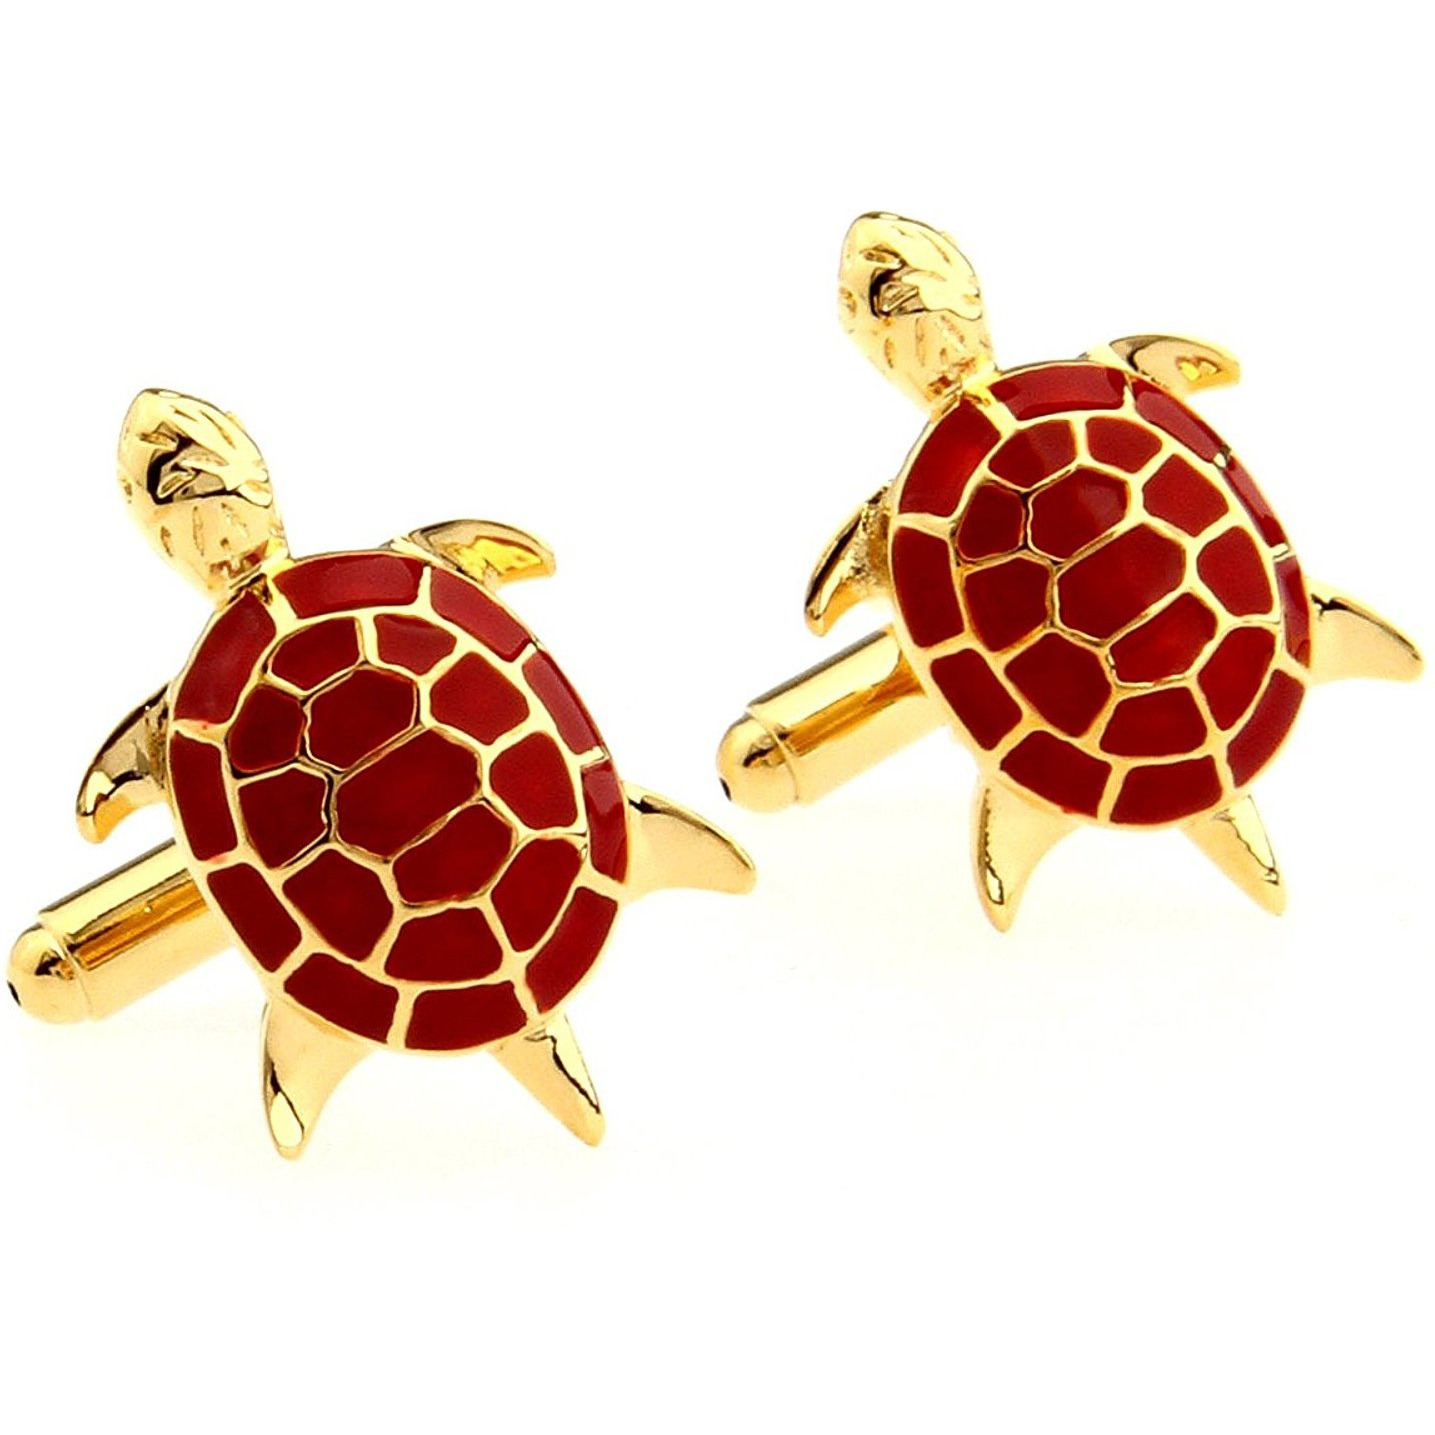 Zivom Red Turtle Tortoise Fengshui Good Luck Formal Shirt Brass Cufflinks Pair for Men Gift Box